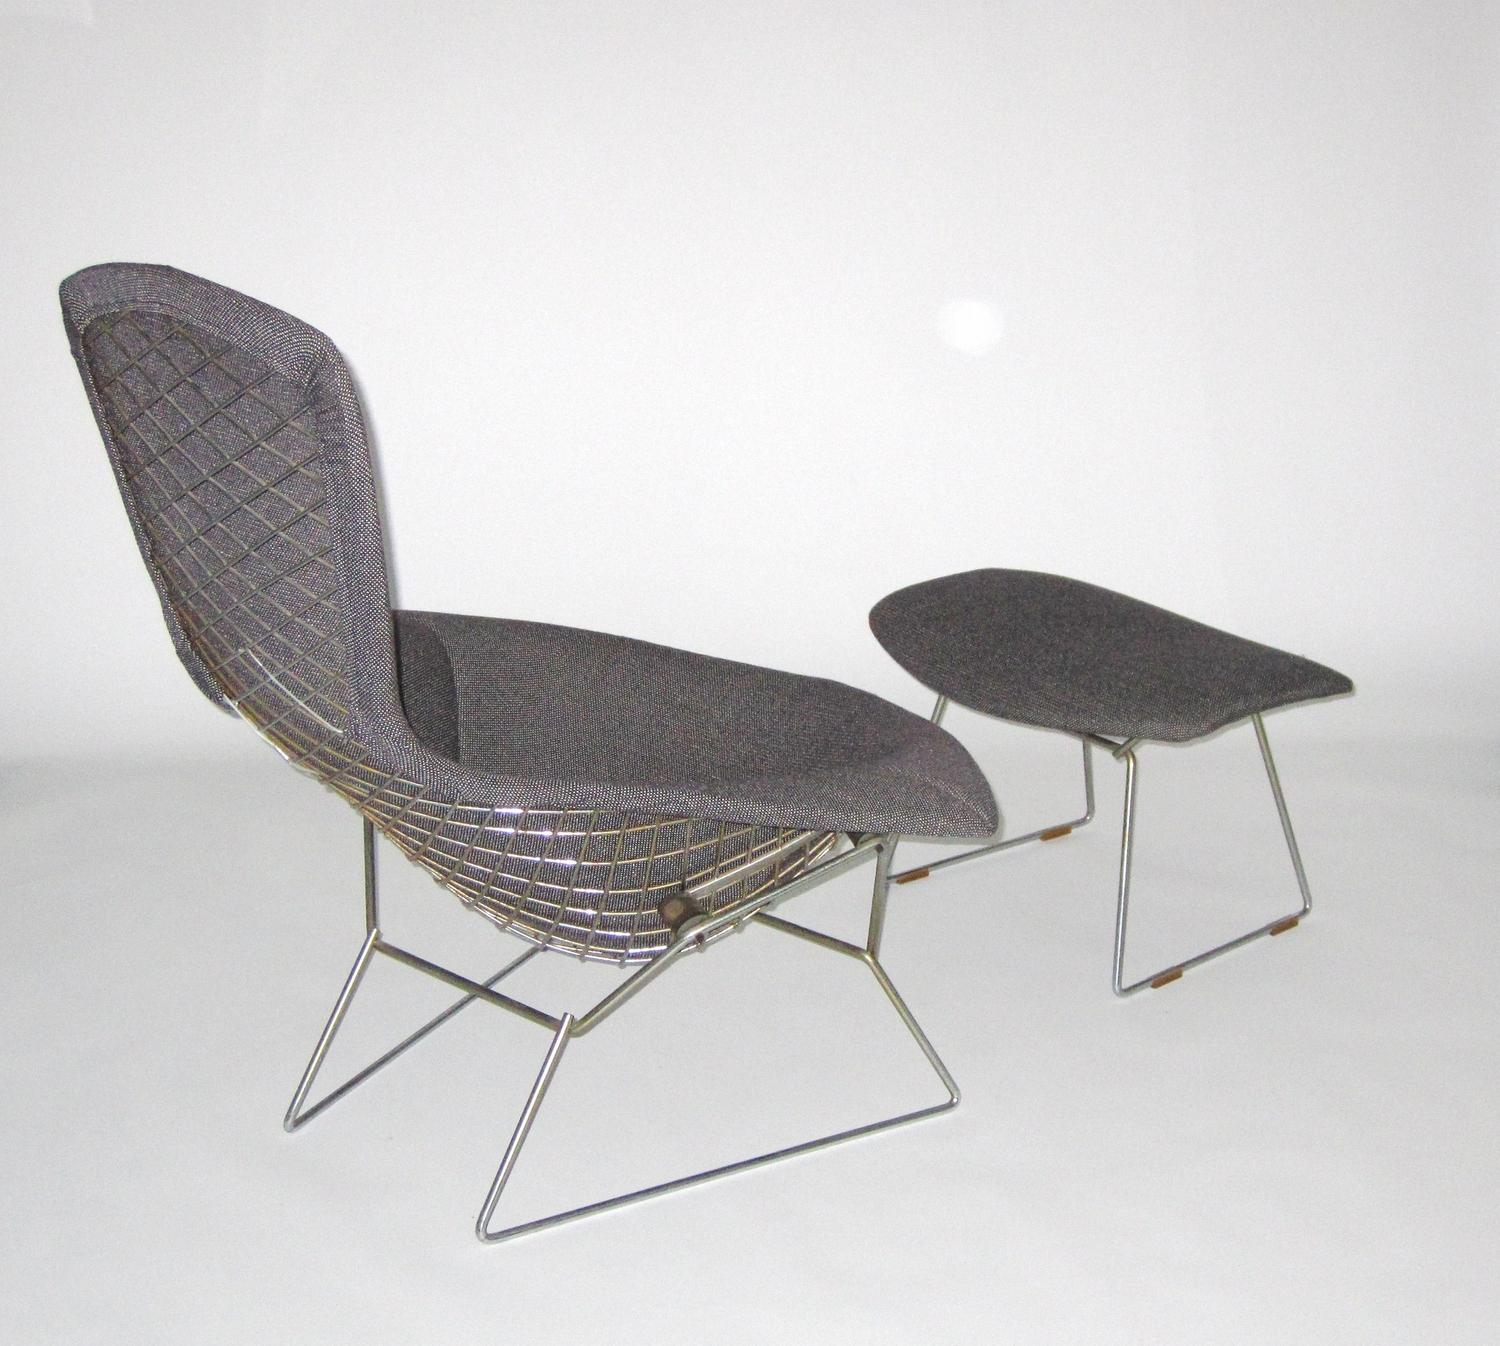 harry bertoia for knoll bird chair with ottoman c  -  · image   harry bertoia for knoll bird chair with ottoman c